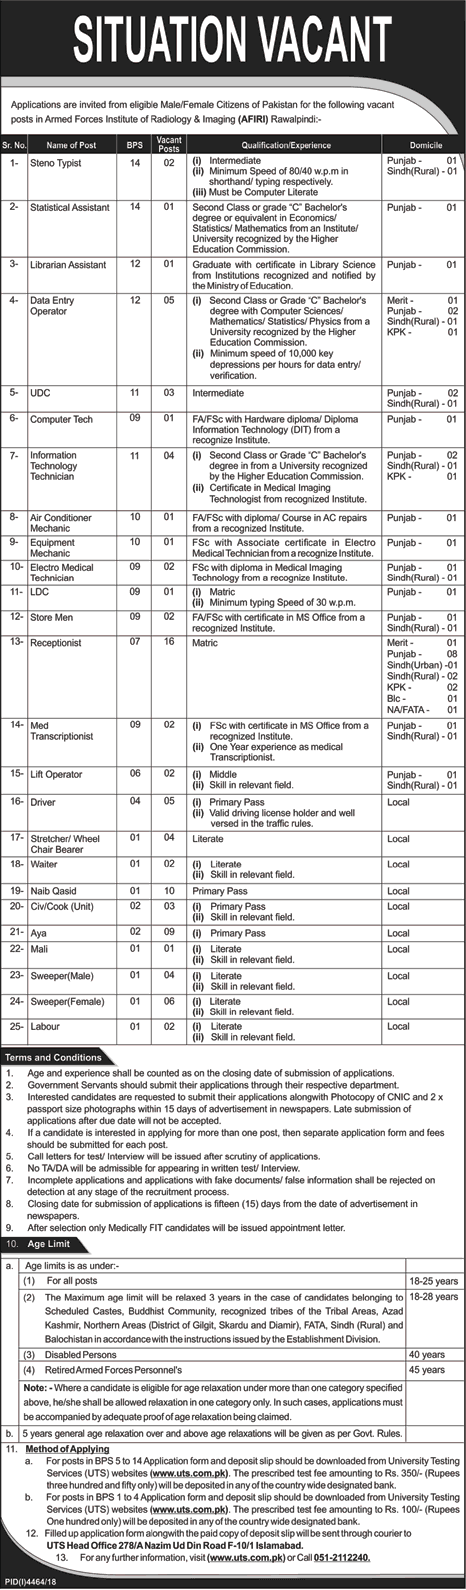 AFIRI Army Jobs 2019 - Khan Advisors